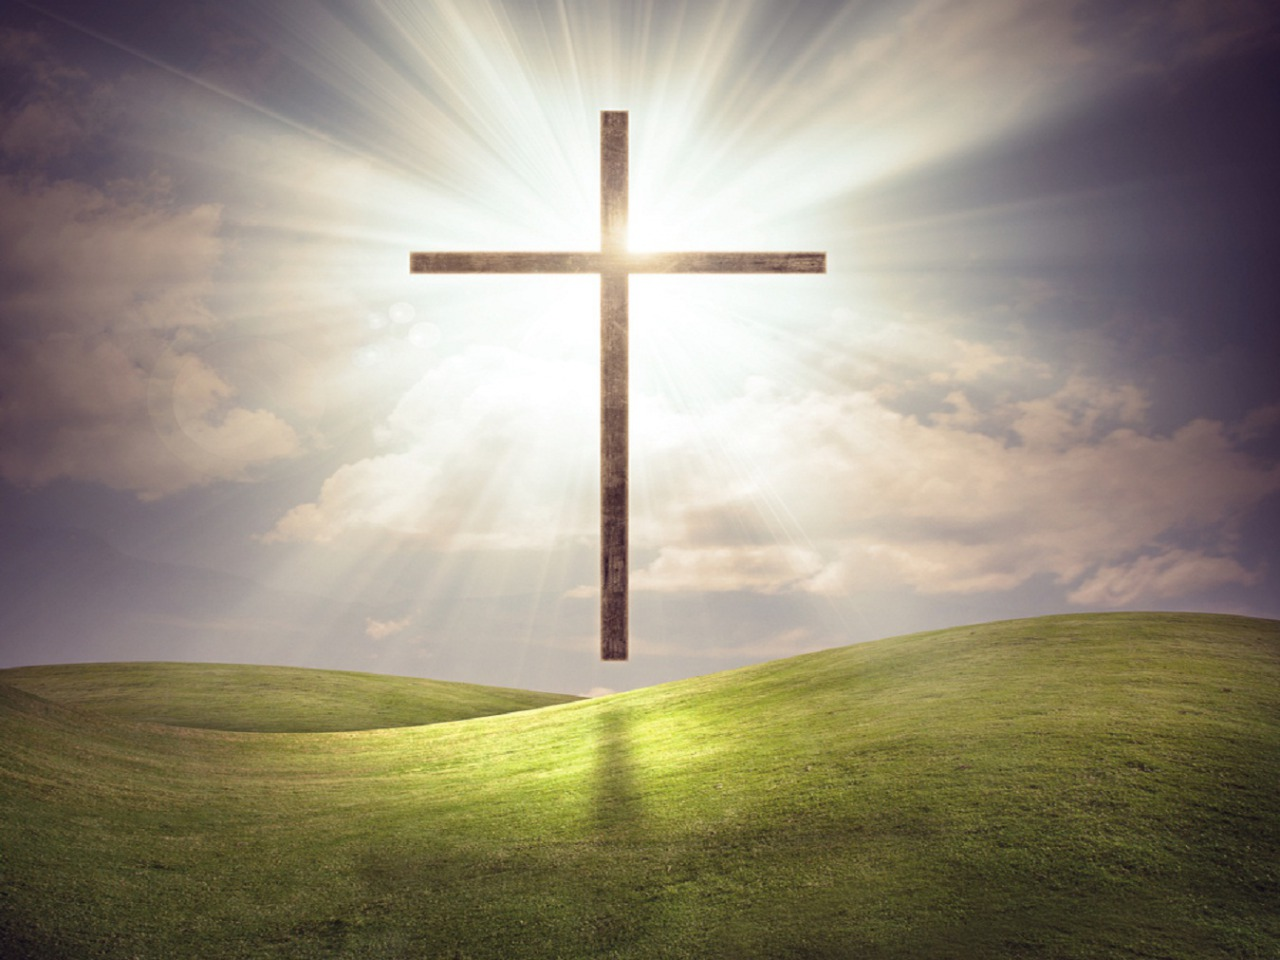 Holy Cross Computer Wallpapers Desktop Backgrounds 1280x960 ID 1280x960